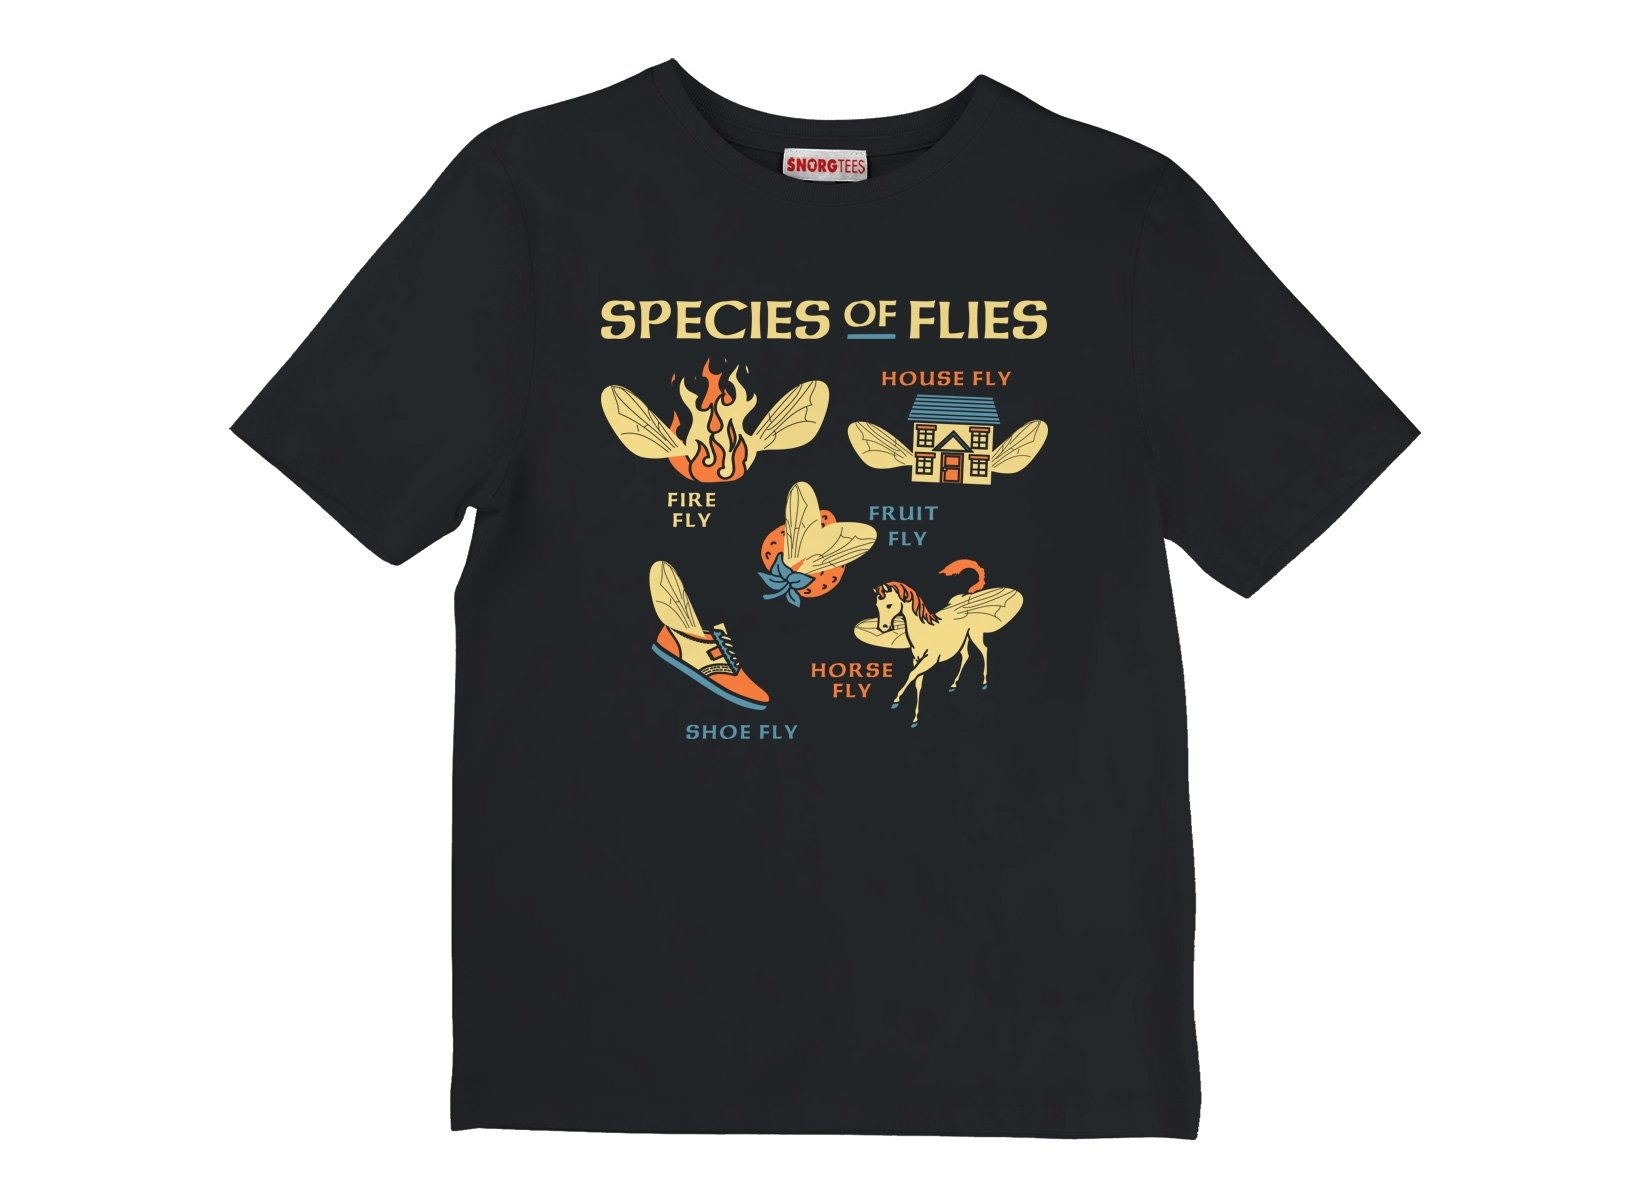 Species Of Flies on Kids T-Shirt